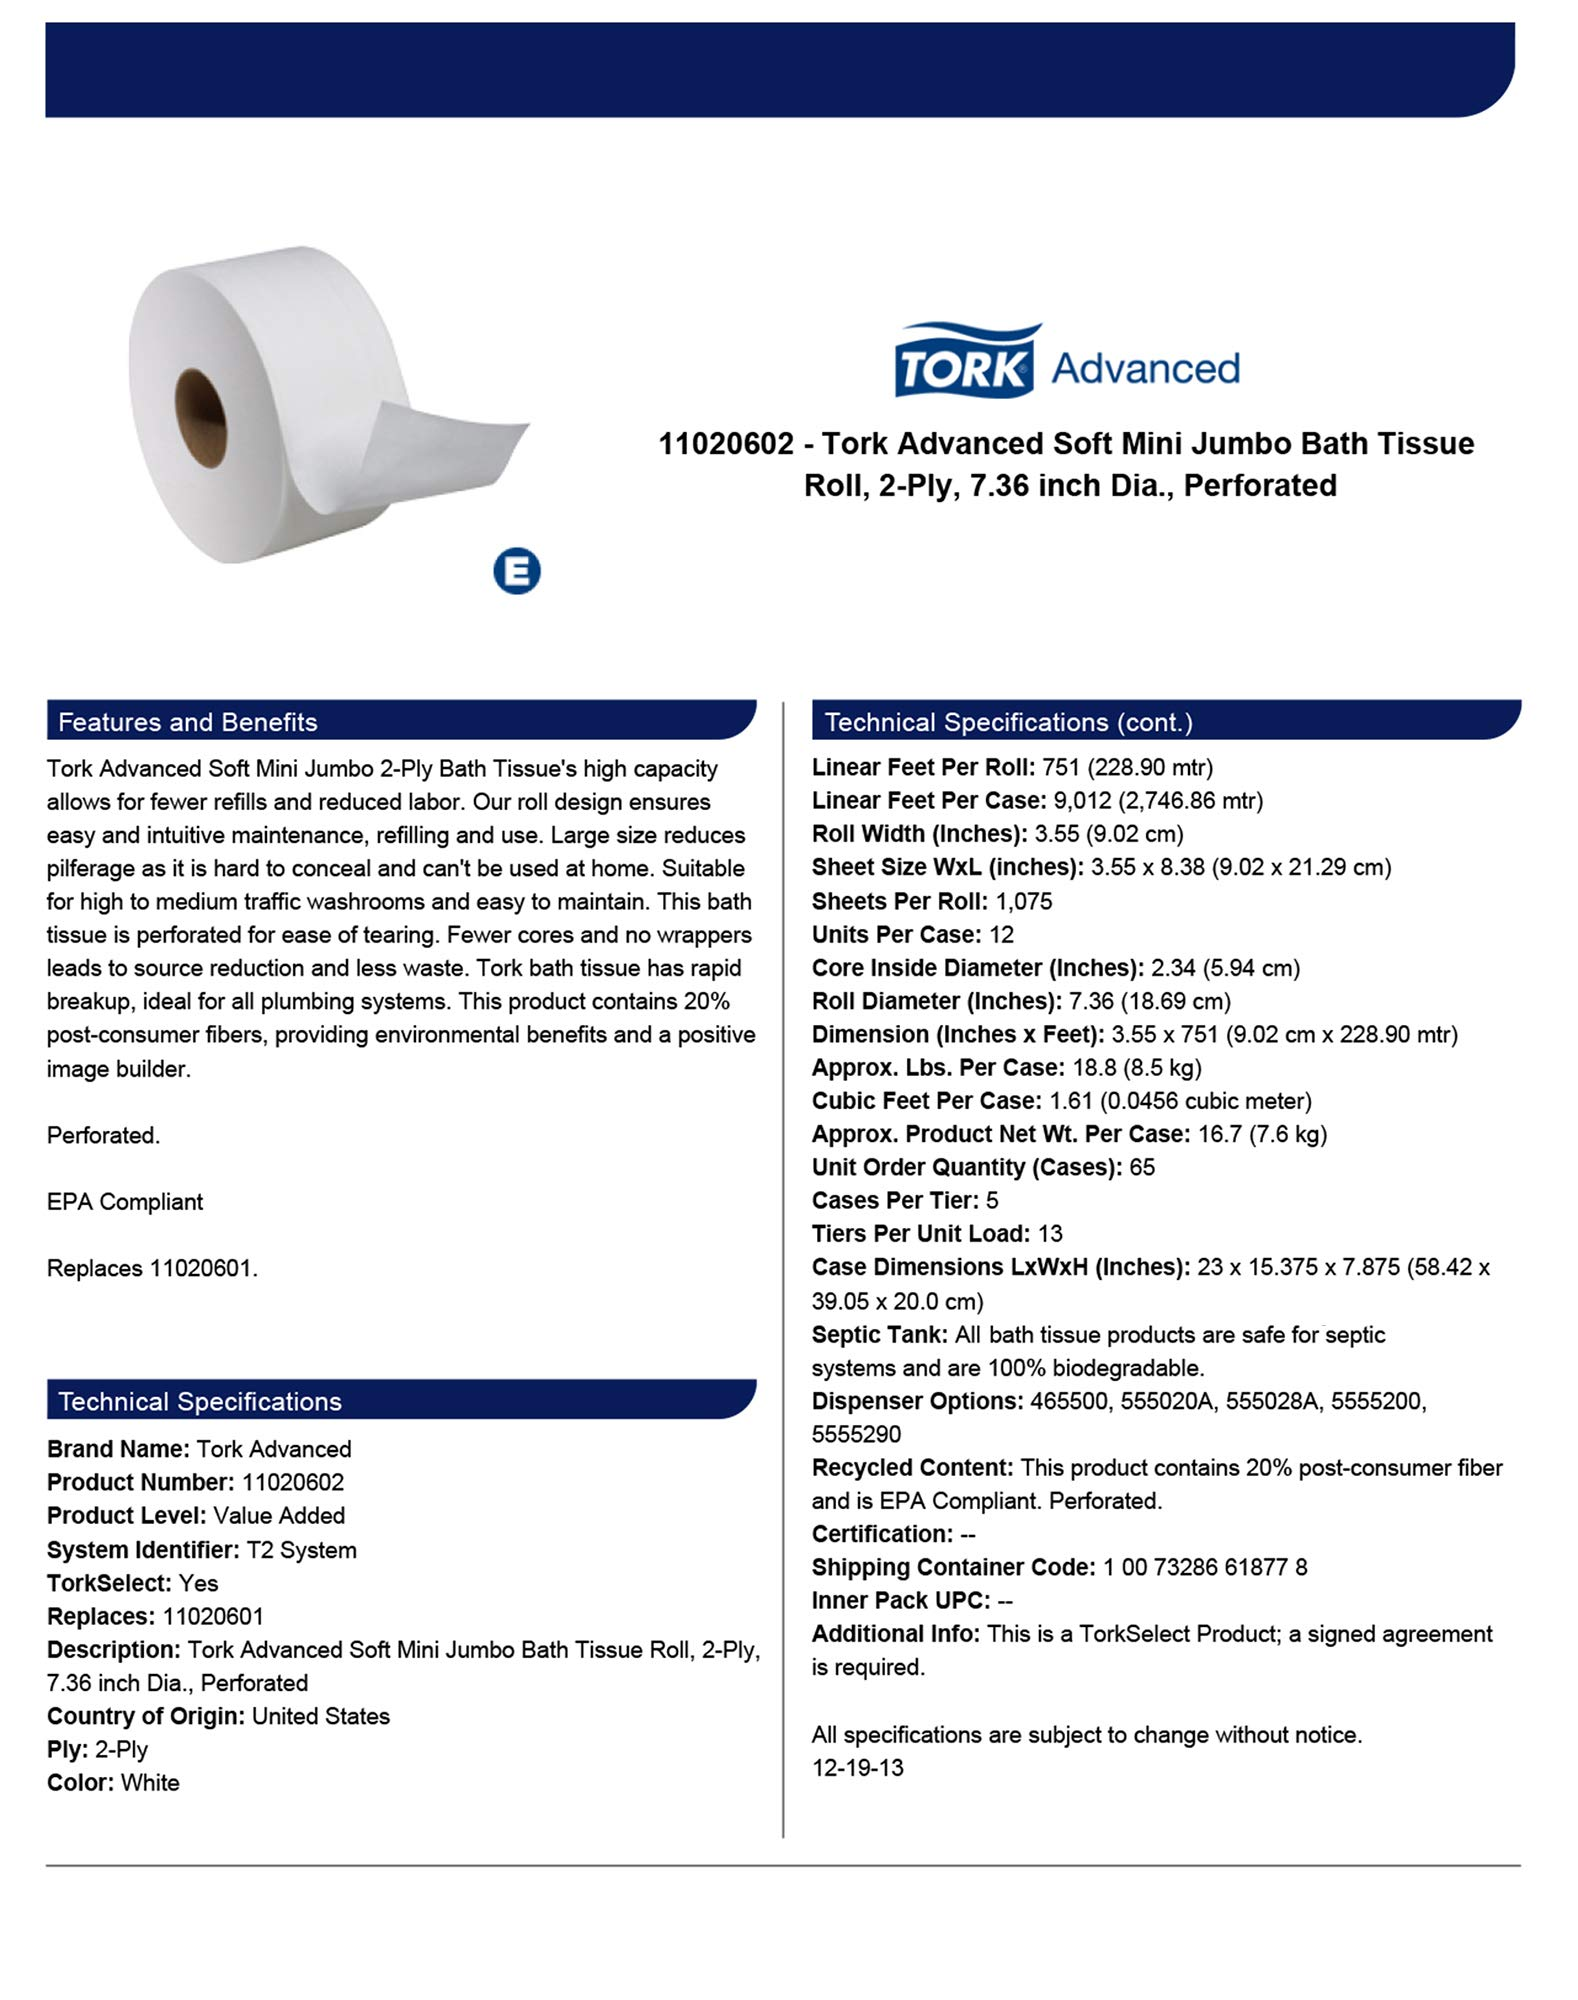 Tork Advanced 11020602 Soft Mini Jumbo Bath Tissue Roll, Perforated, 2-Ply, 7.36'' Diameter, 3.55'' Width x 8.38'' Length, White (Case of 12 Rolls, 1,075 per Roll, 12,900 Sheets) by Tork (Image #4)